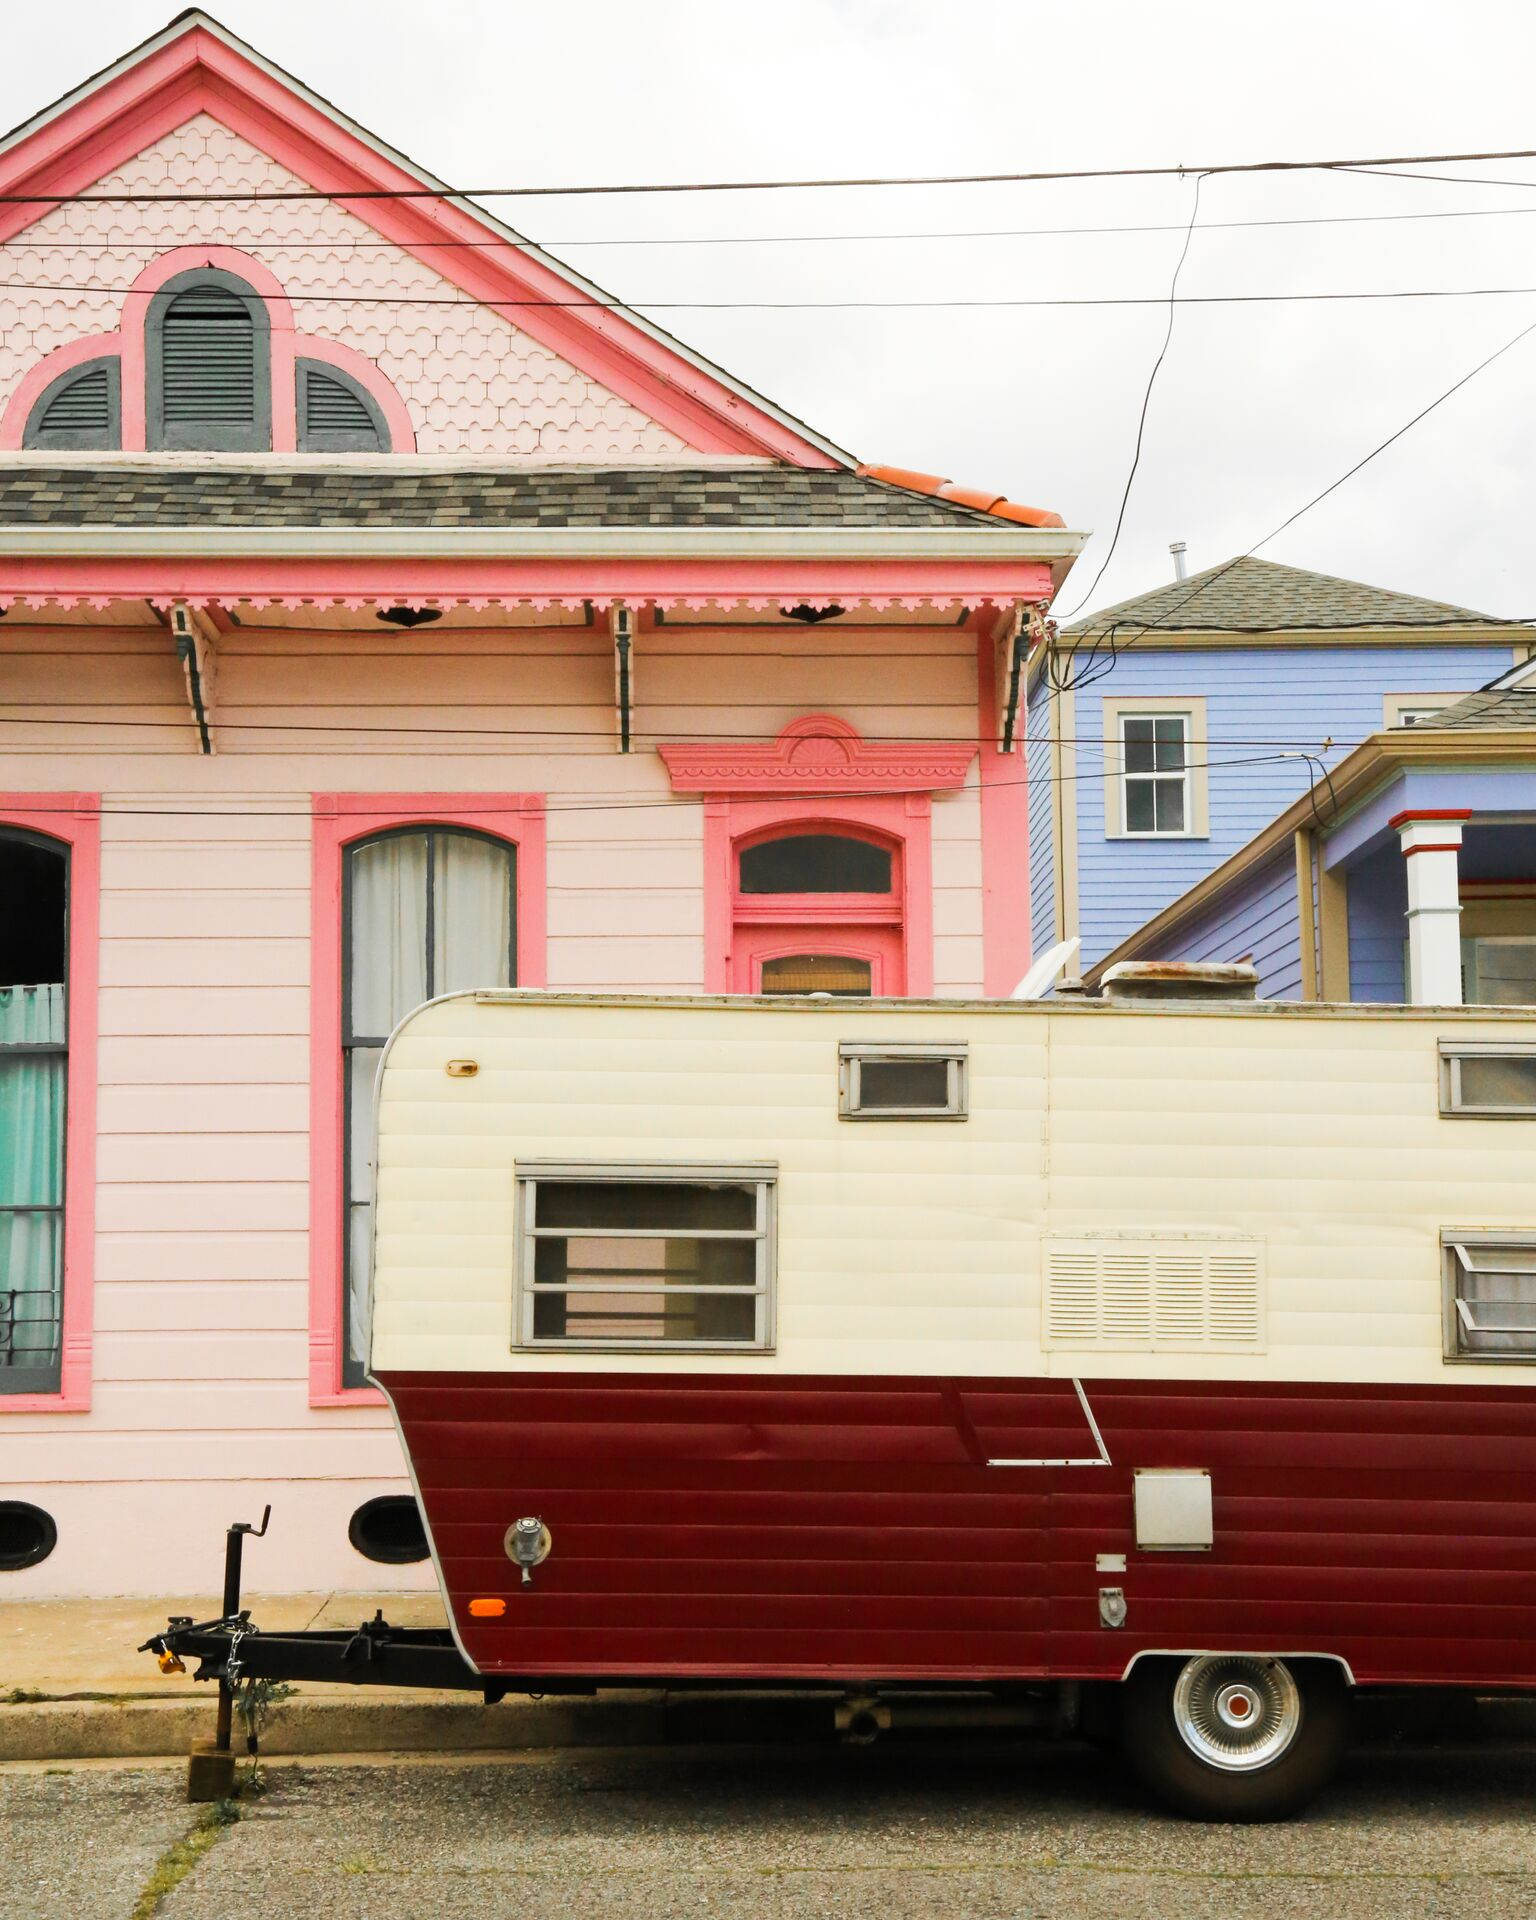 10 Things You Should Know Before Buying A Vintage Camper